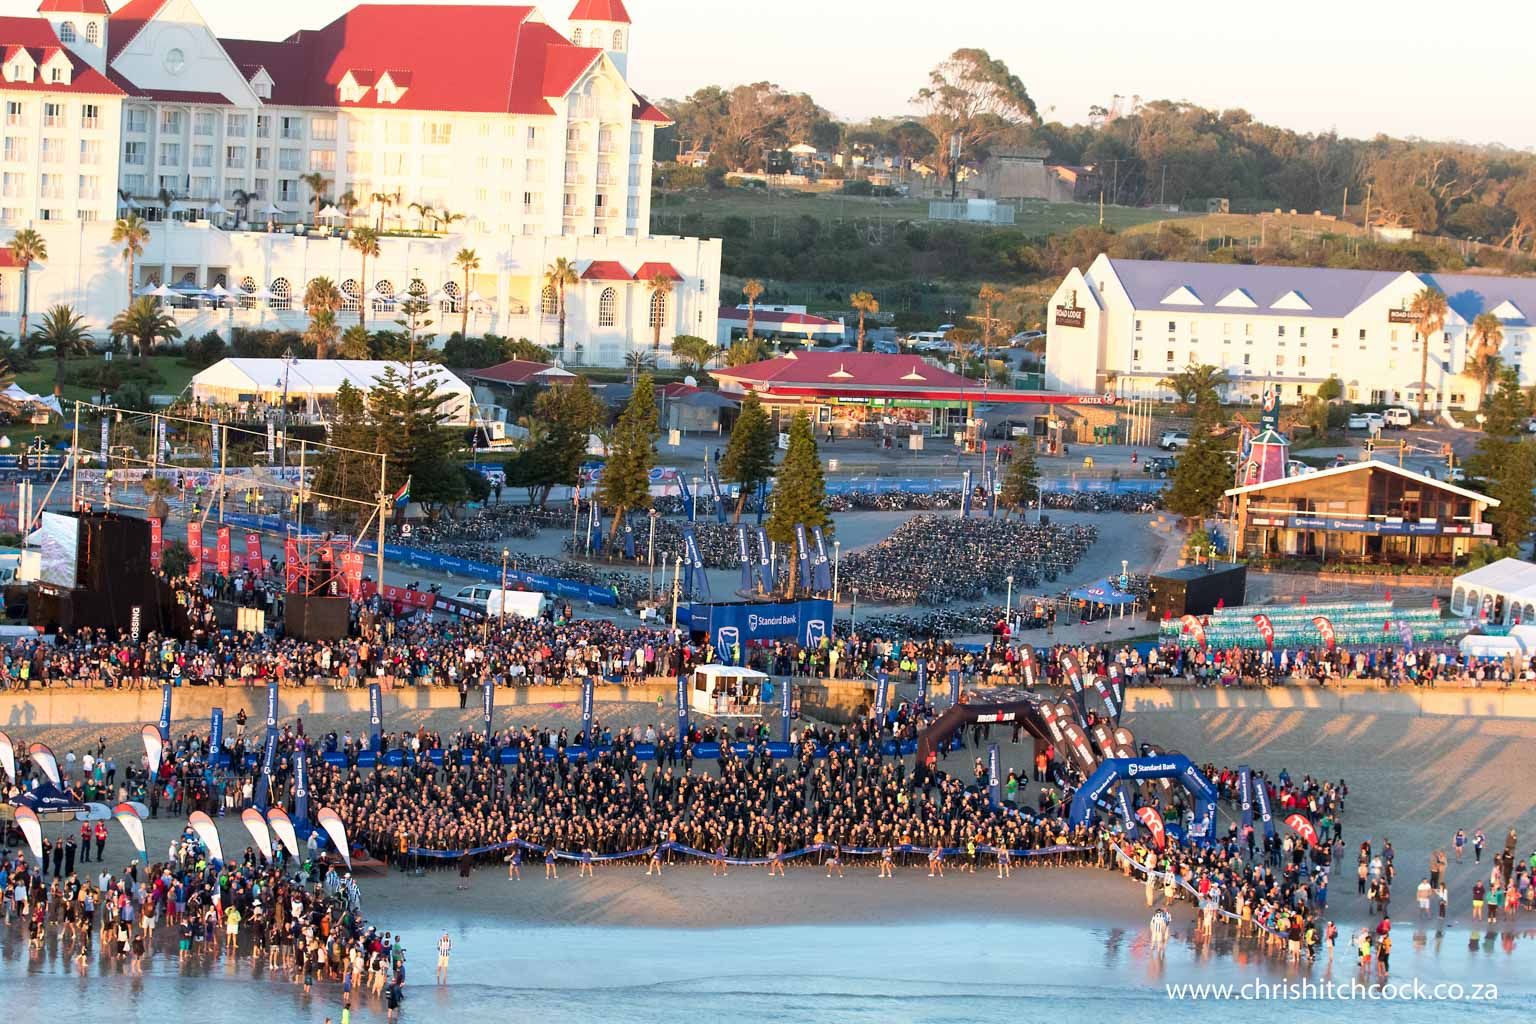 Standard bank ironman african championship chris - Drive from port elizabeth to cape town ...